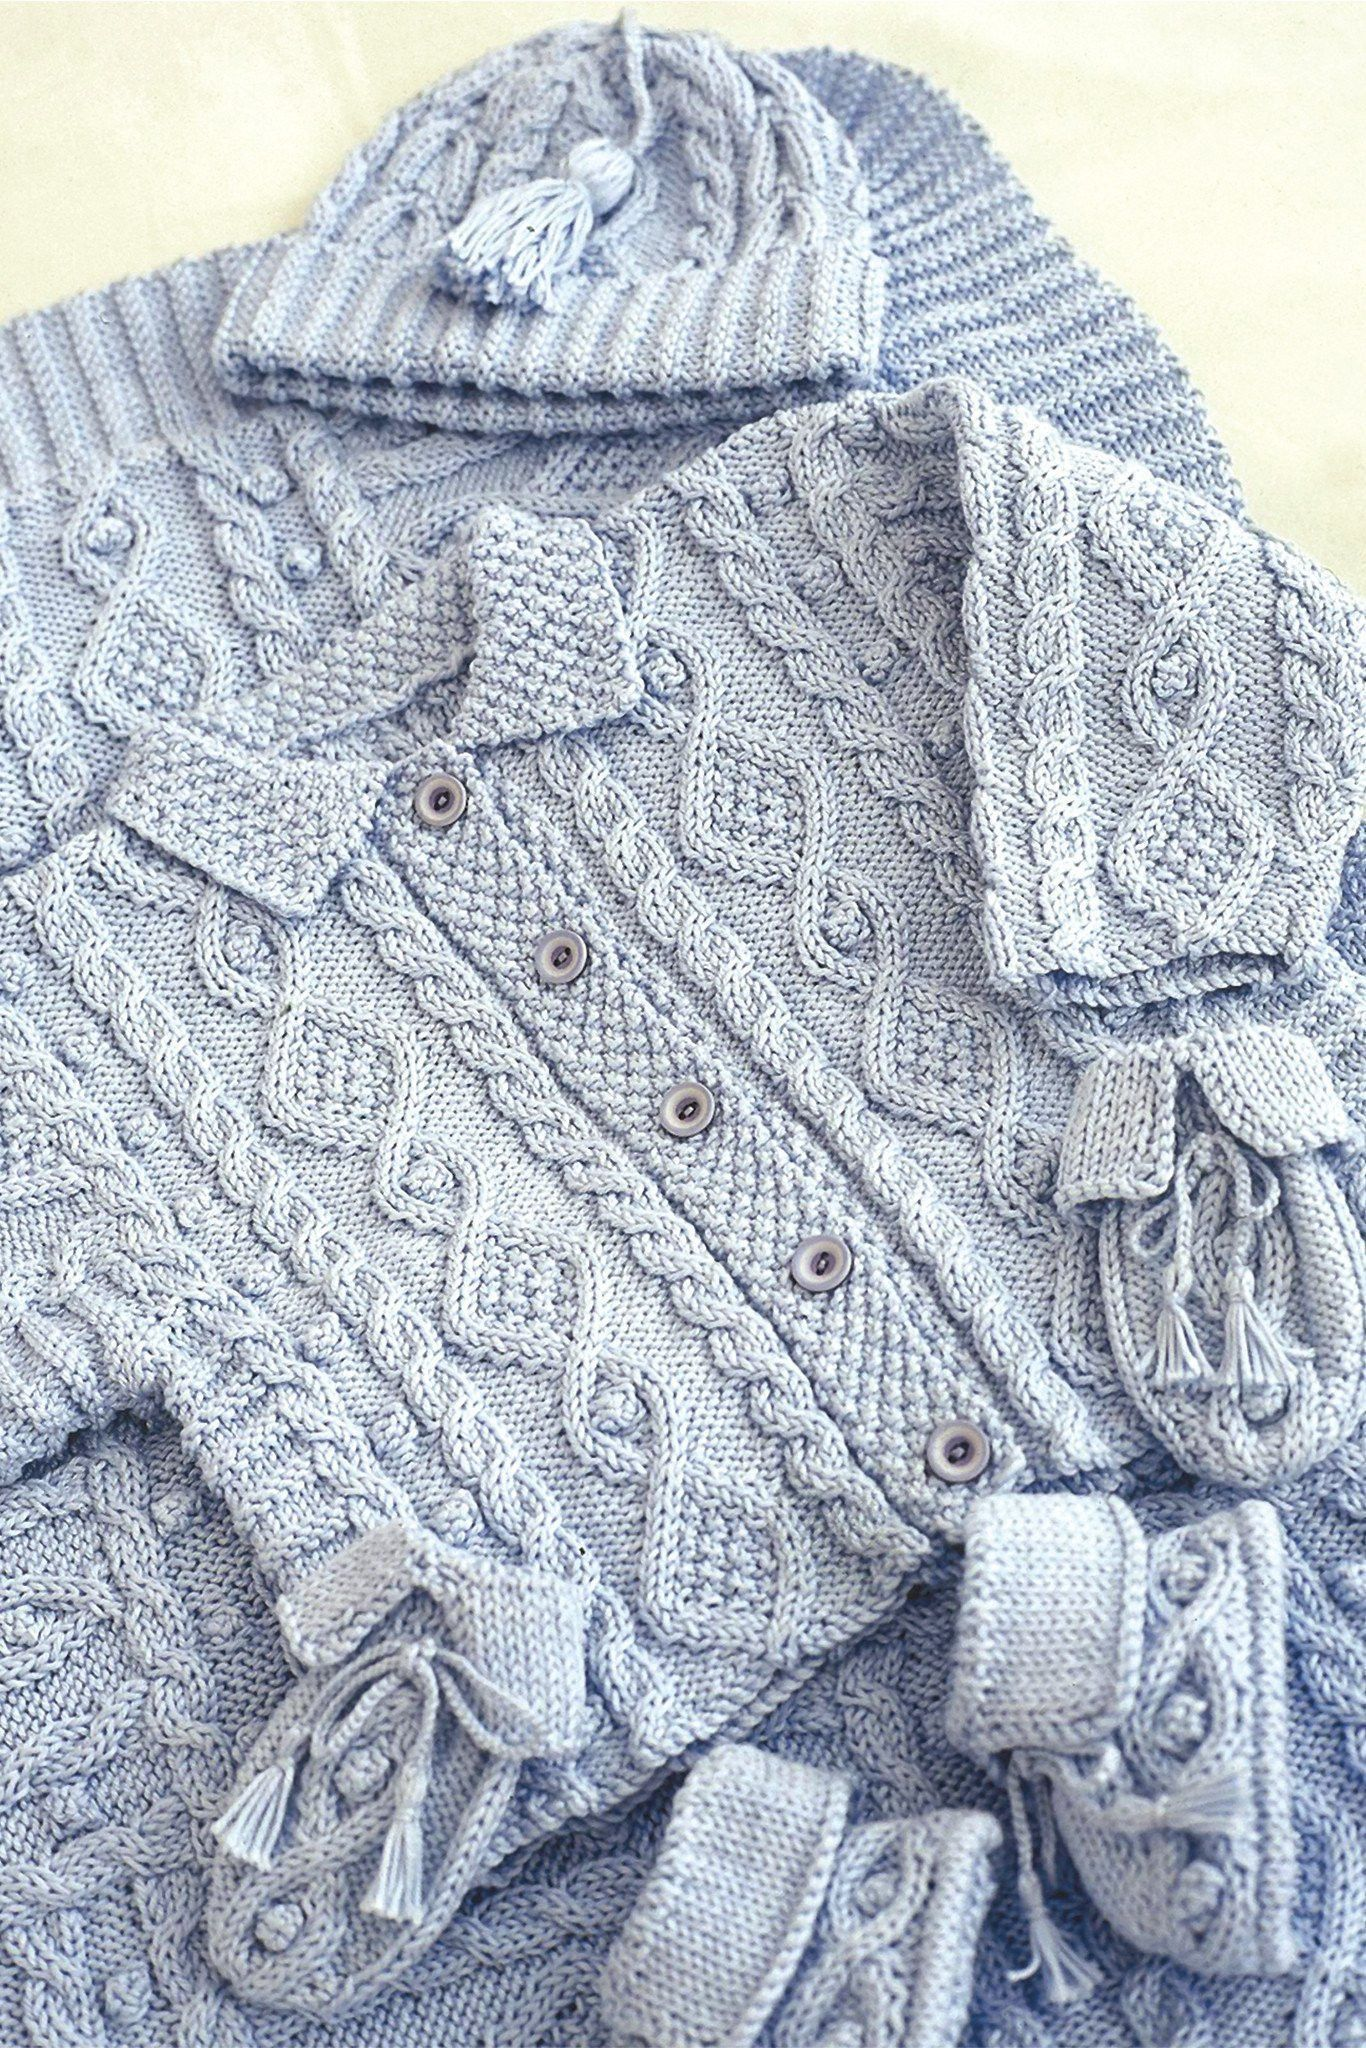 Baby Jacket Accessories And Blanket Knitting Patterns